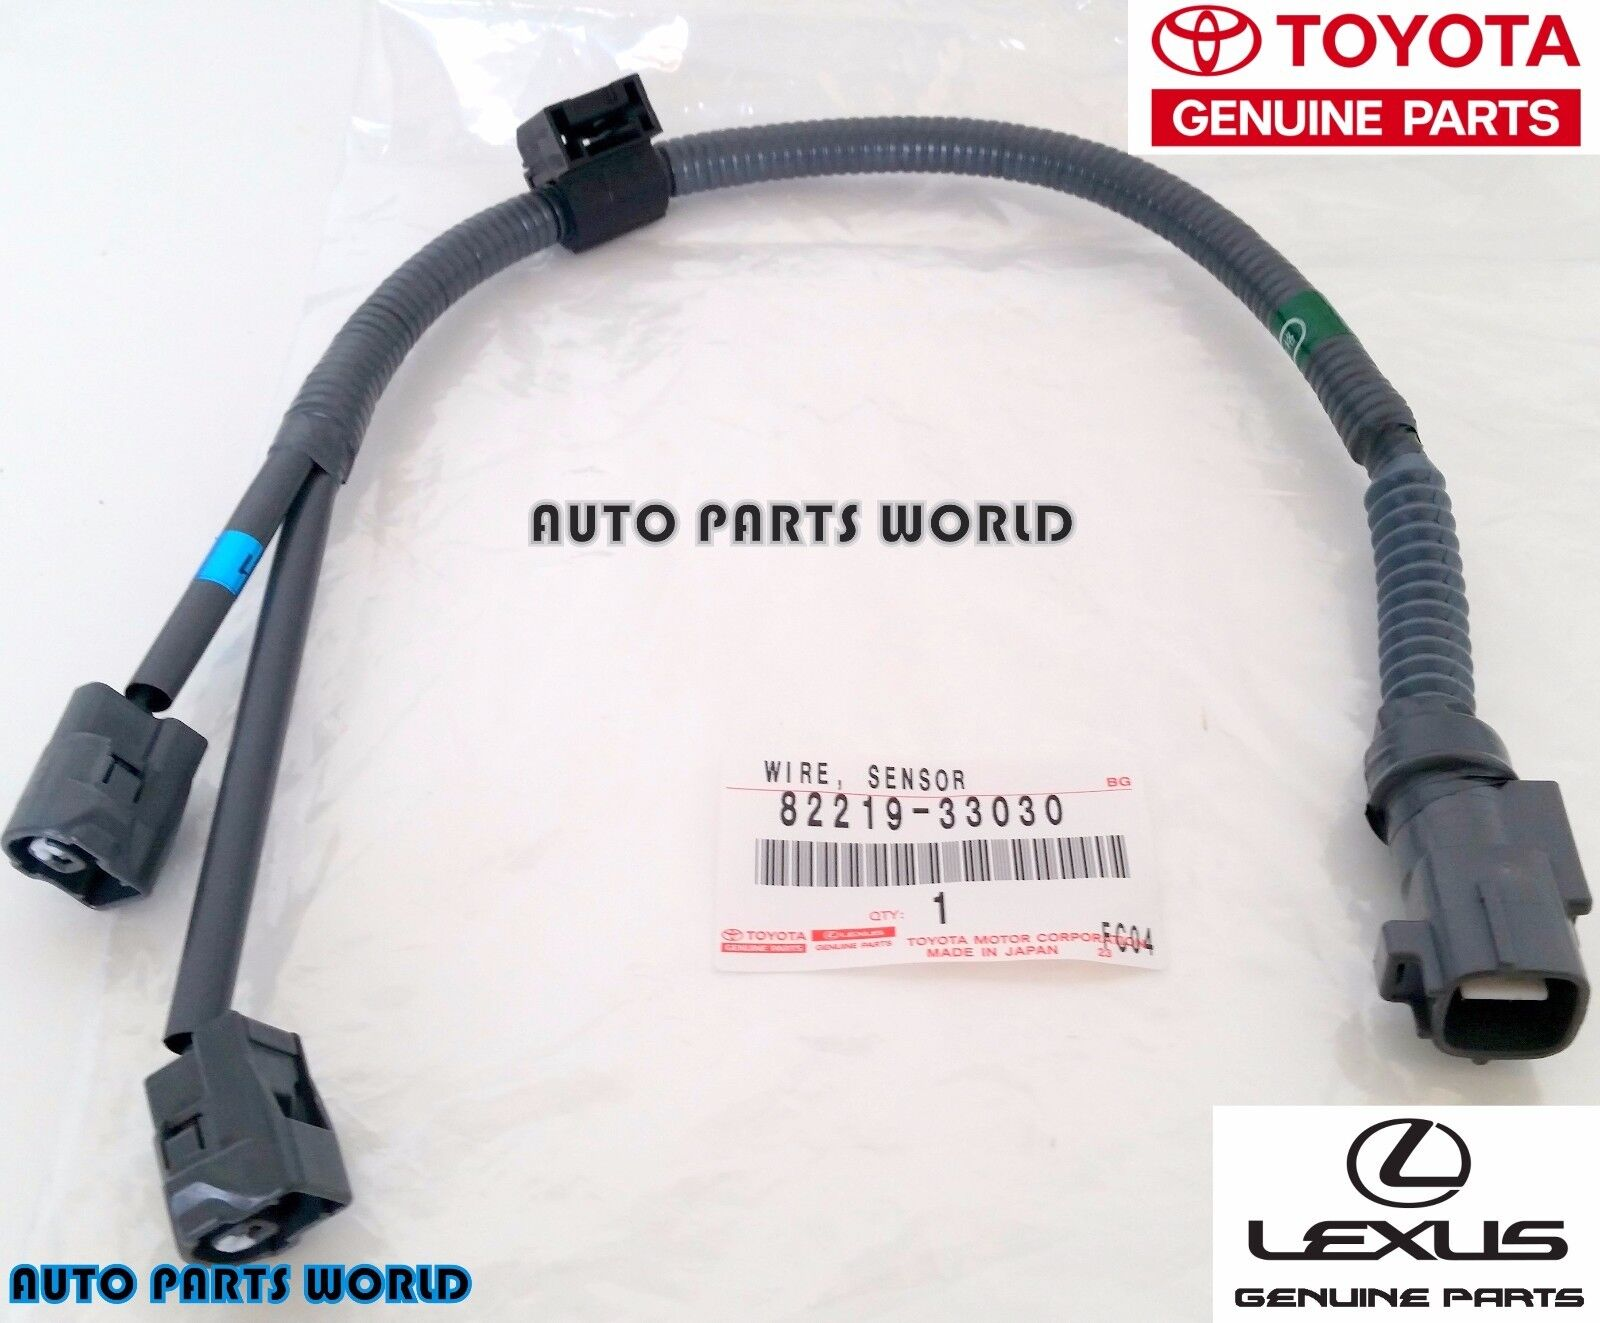 New genuine toyota lexus oem knock sensor wire harness